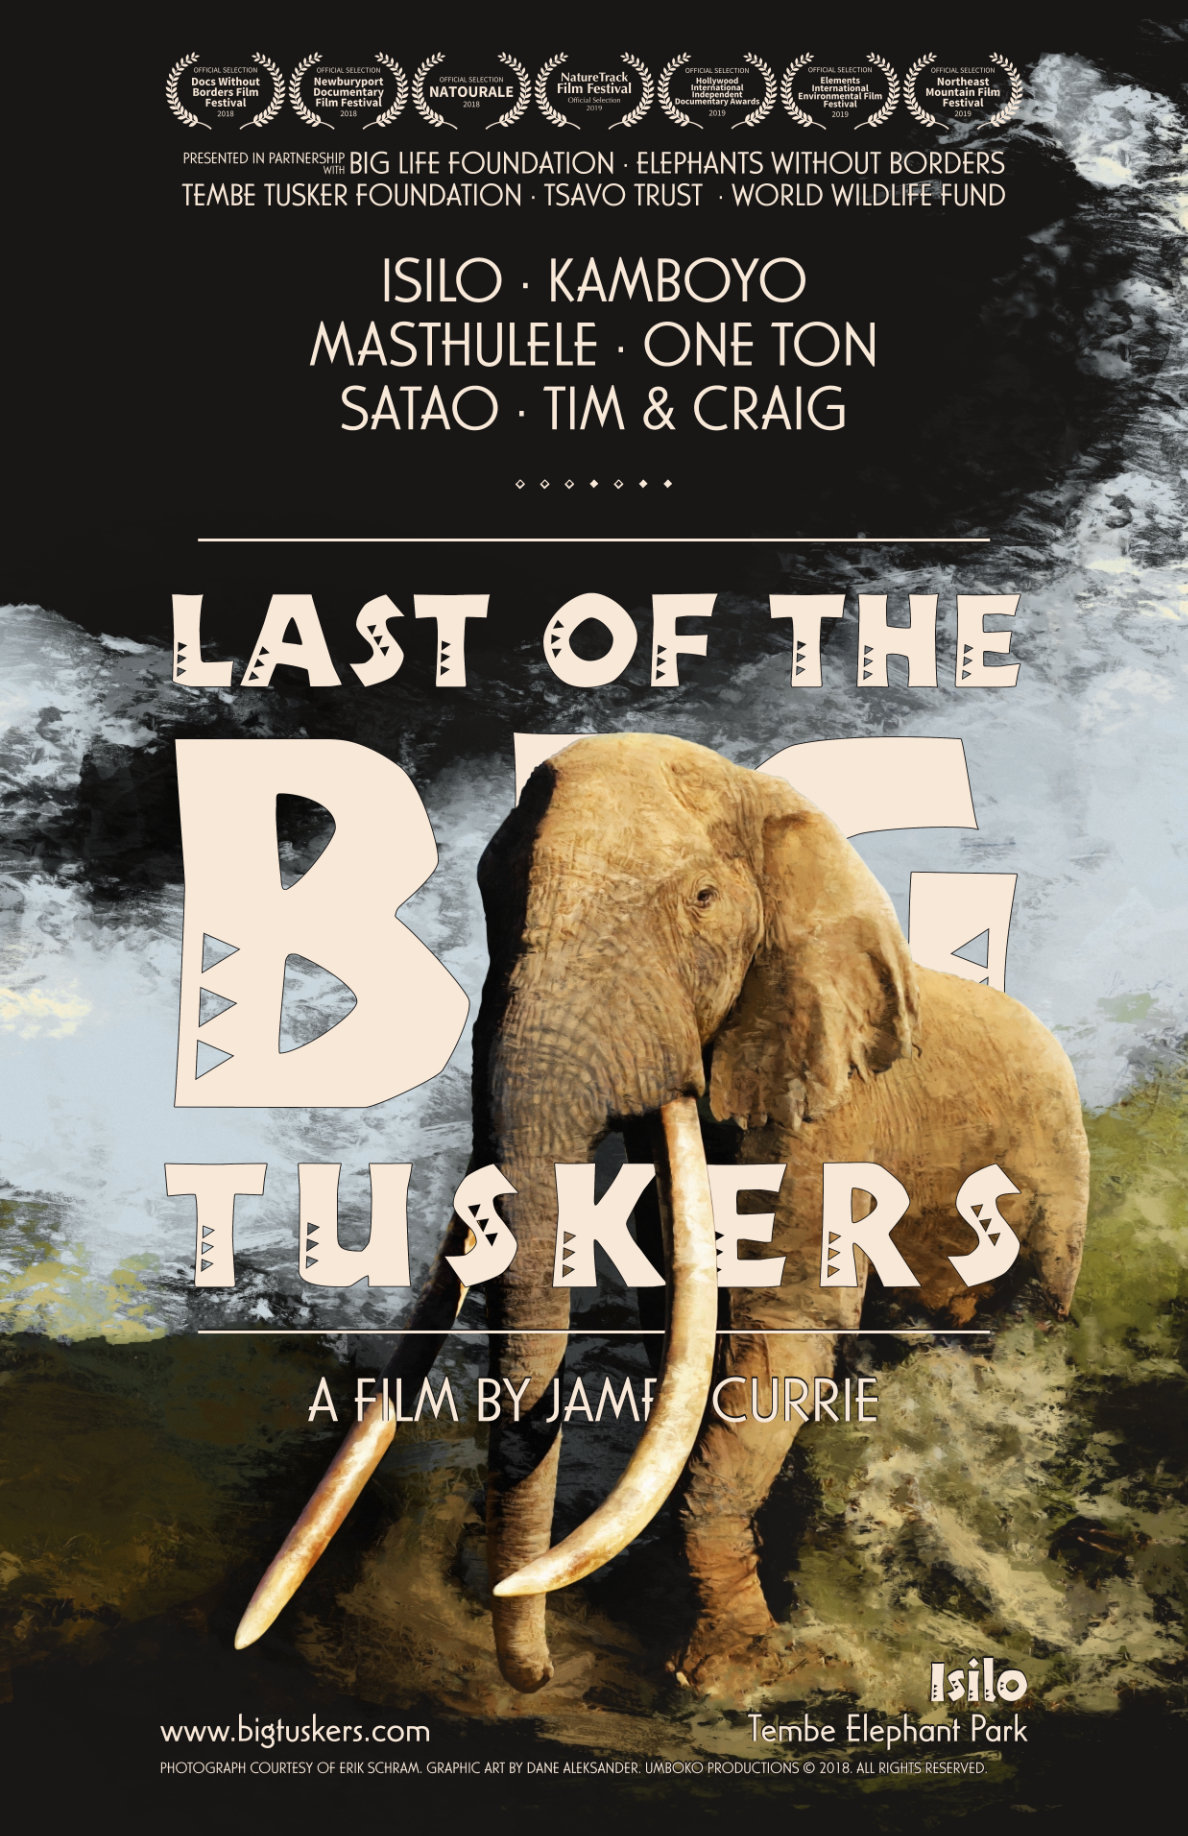 Last of the Big Tuskers – festival poster © 2018 Umboko Productions